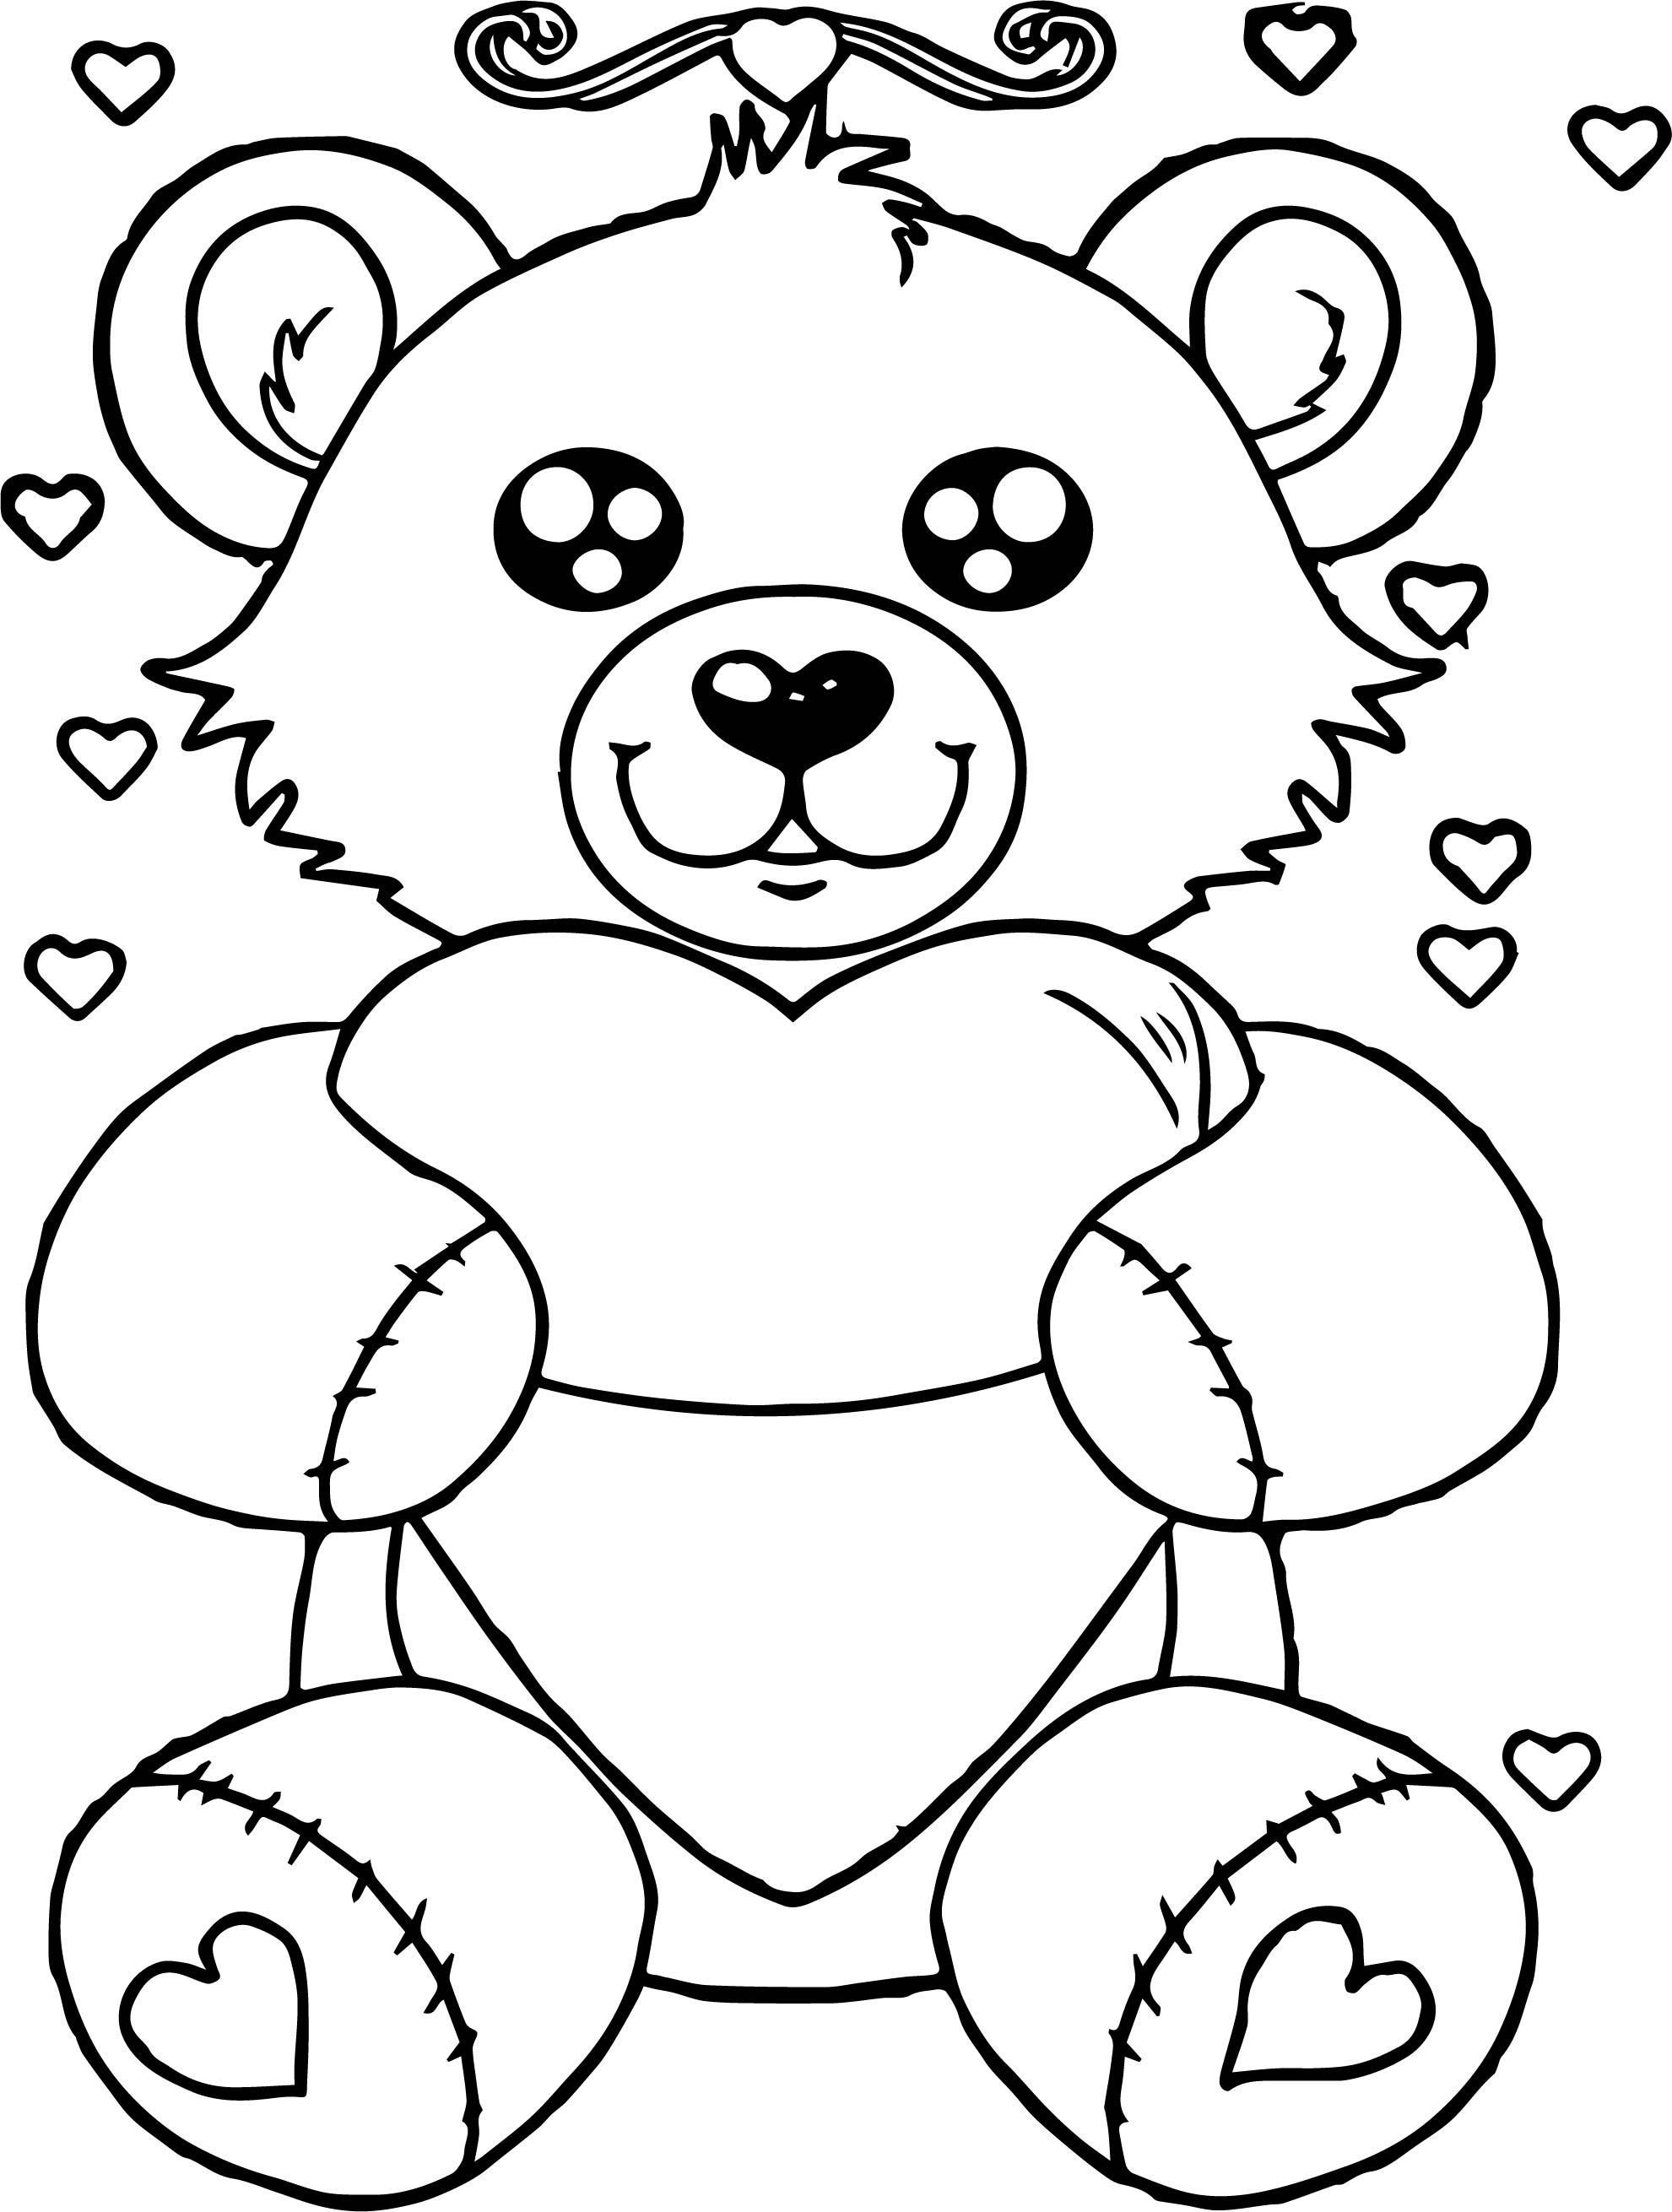 Bear My Heart Coloring Page